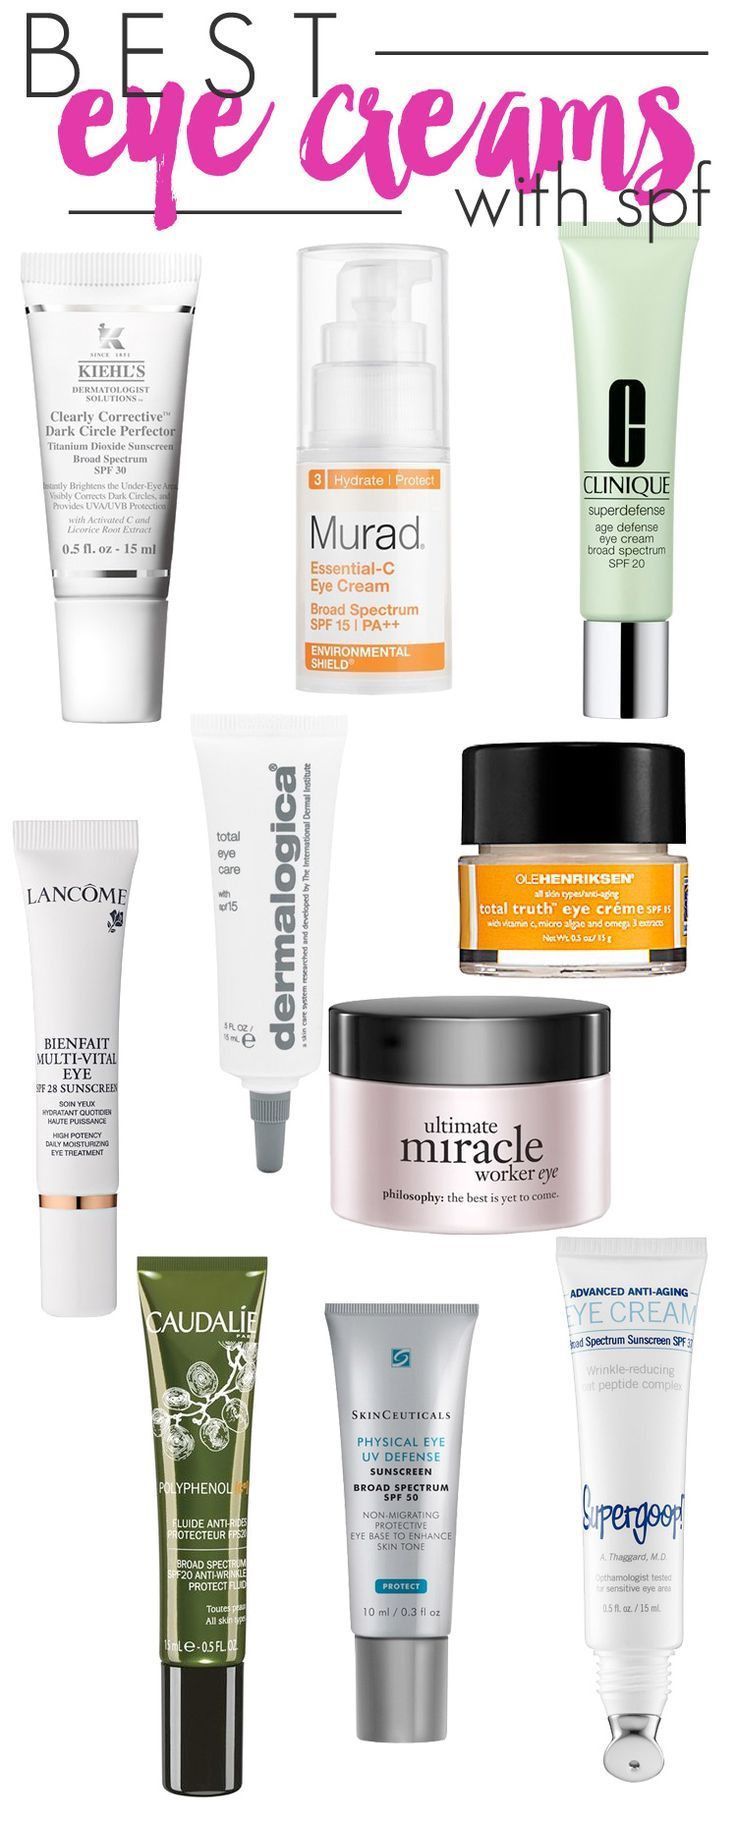 Top 10 Eye Creams with SPF. — Beautiful Makeup Search